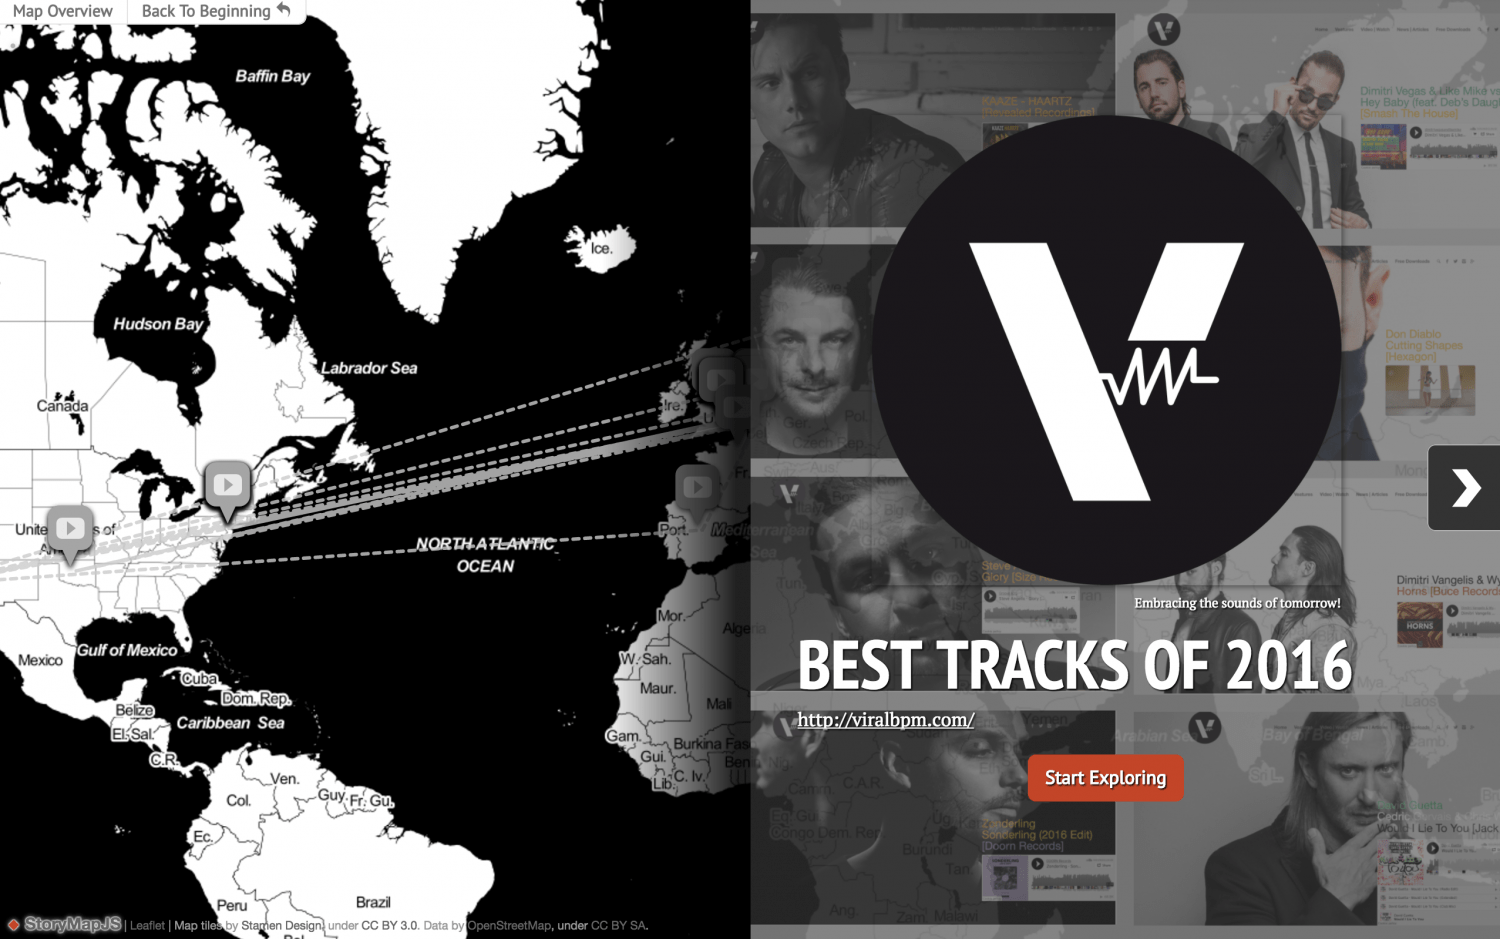 The Best House Music Songs Of 2016 into a #storymap by Viralbpm!